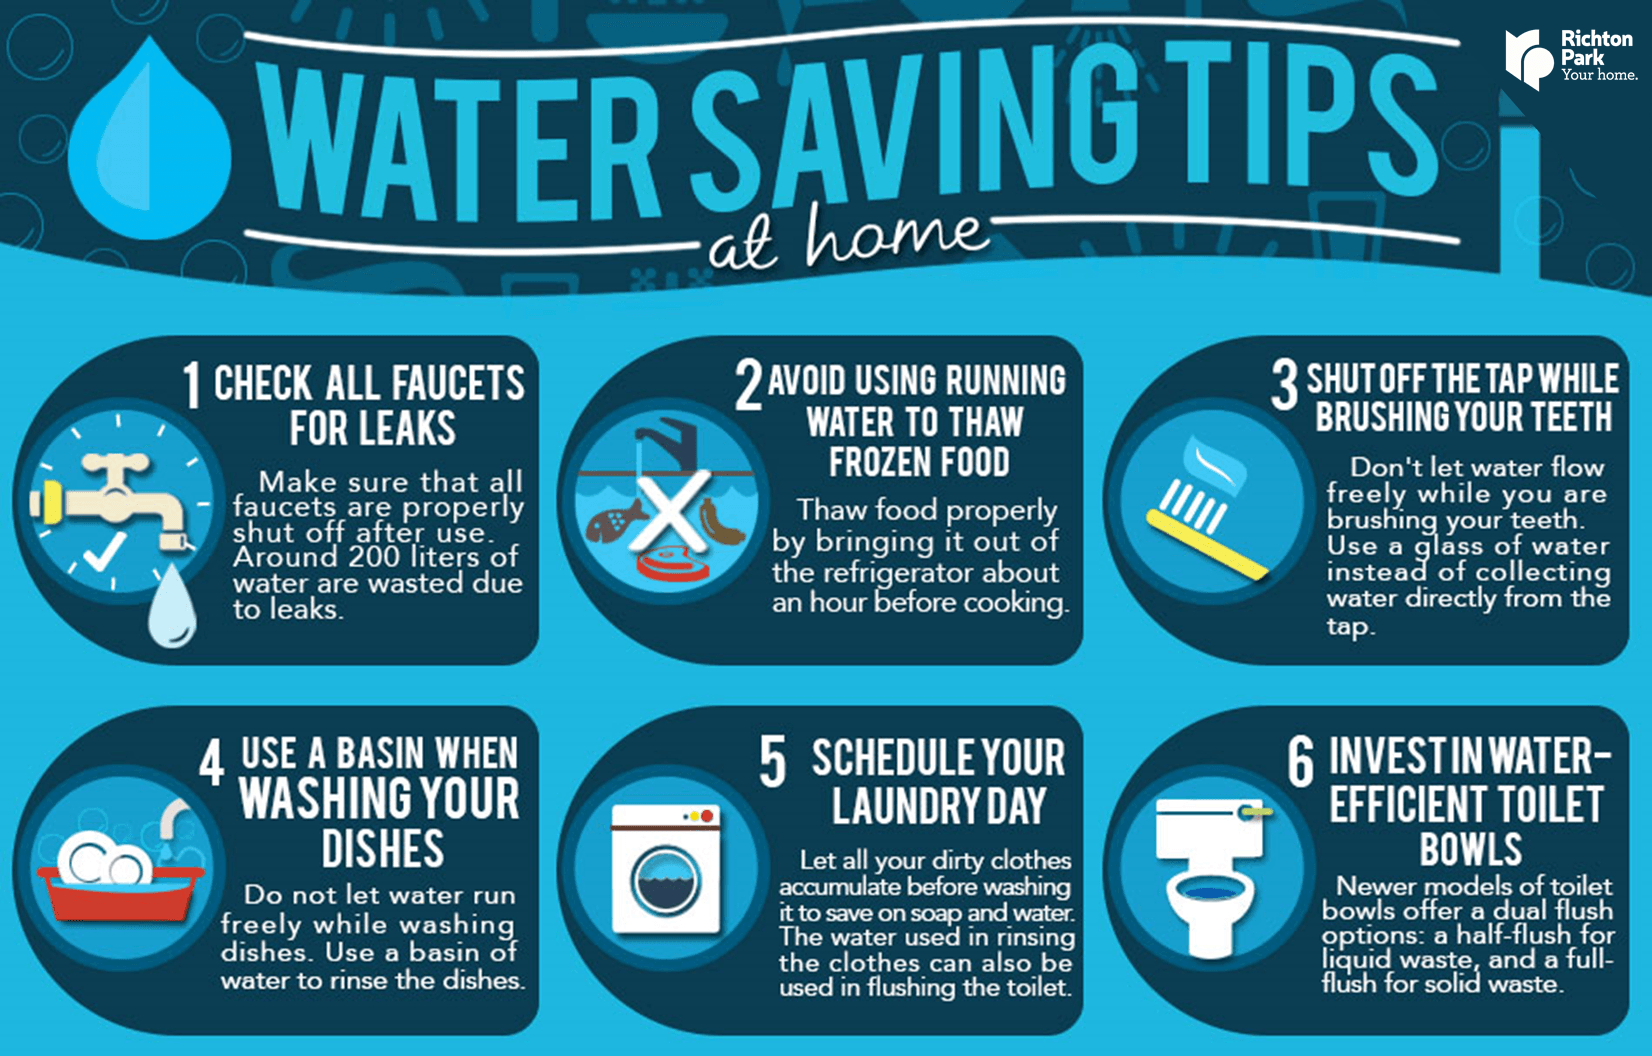 WaterSavingTips Home